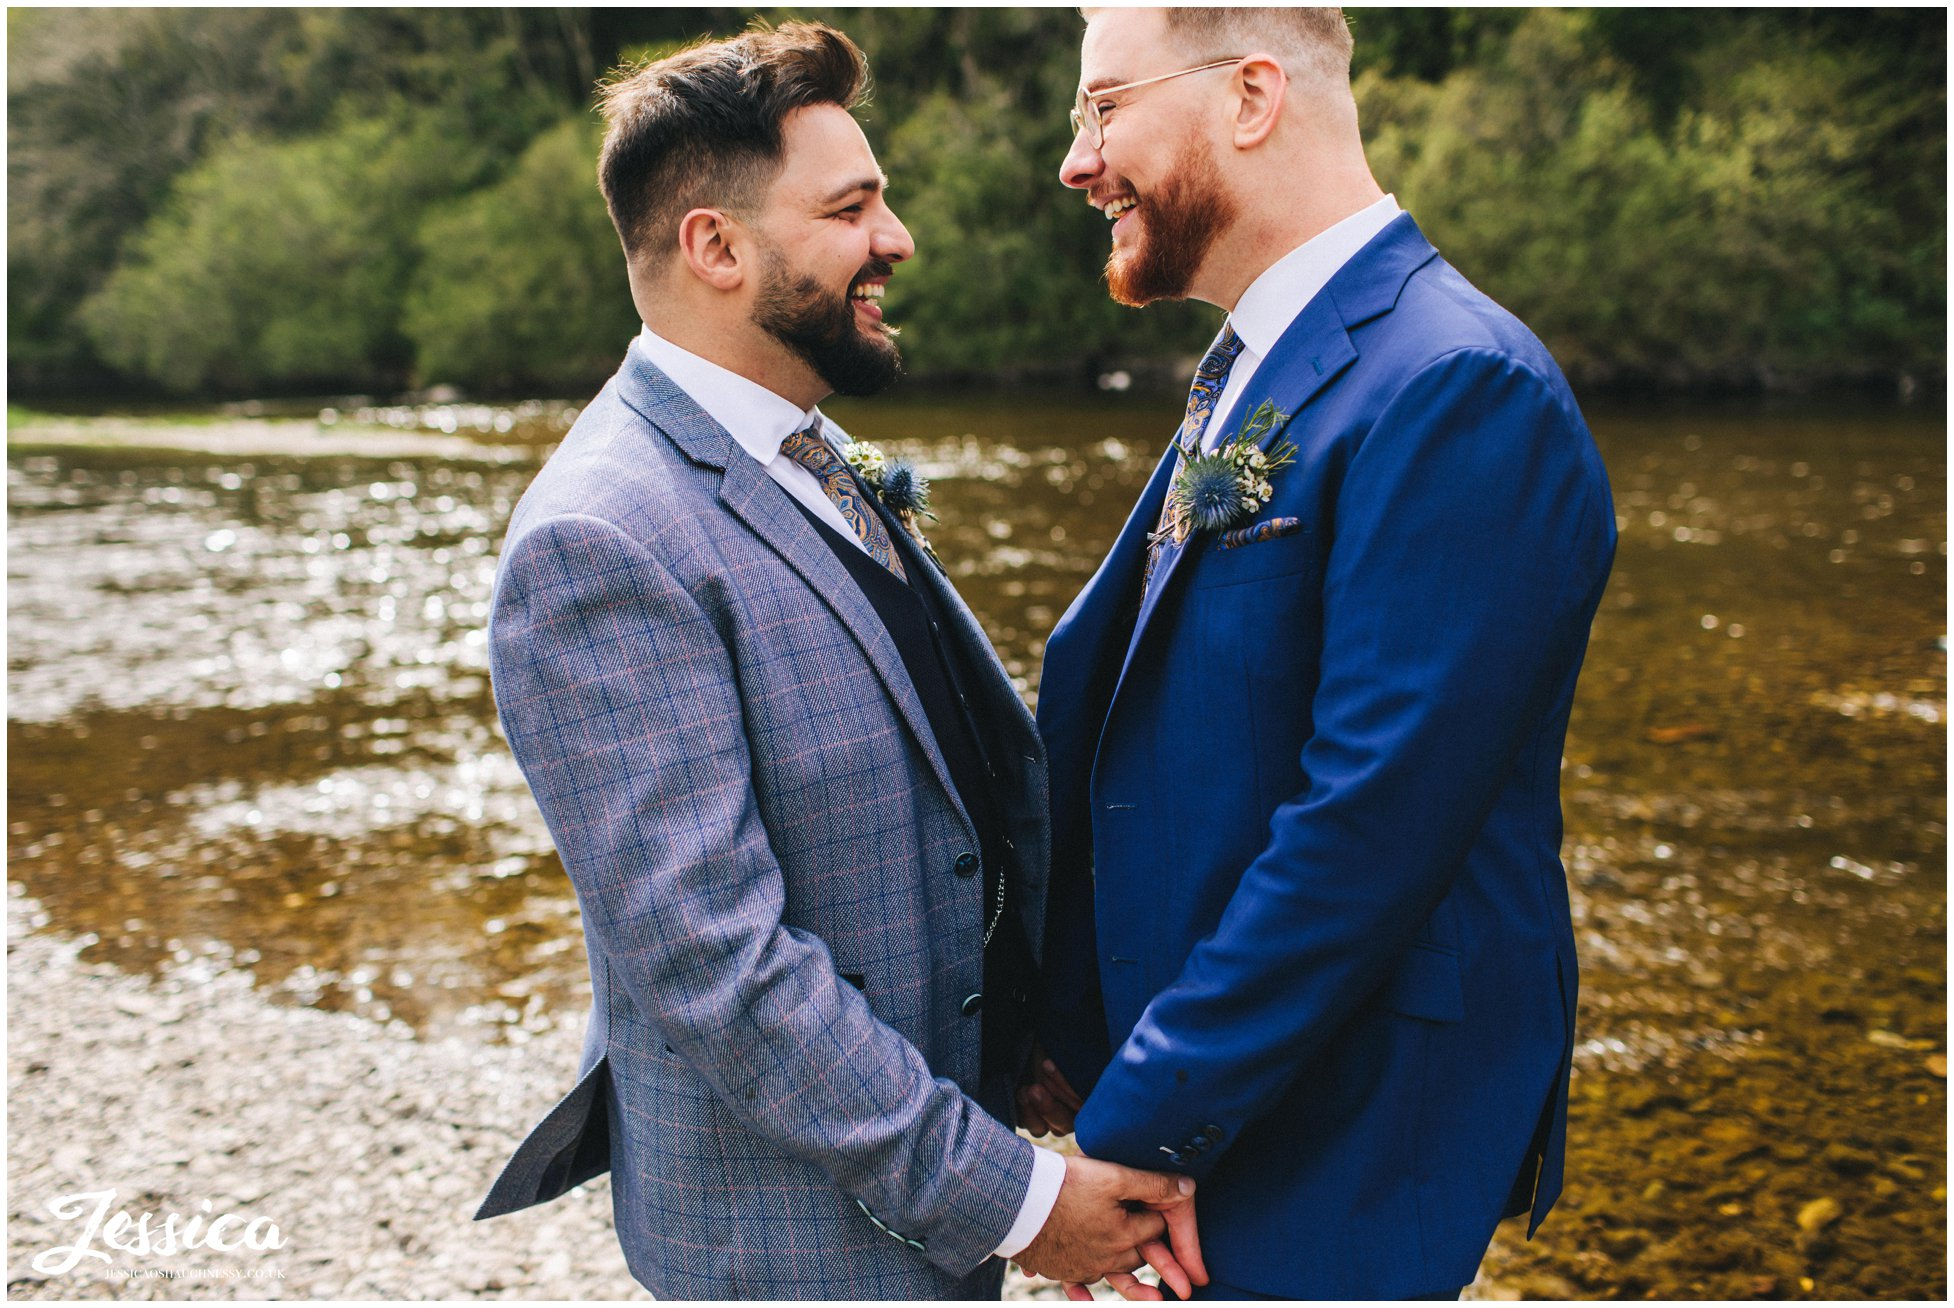 Outdoor Tipi wedding in the Lake District